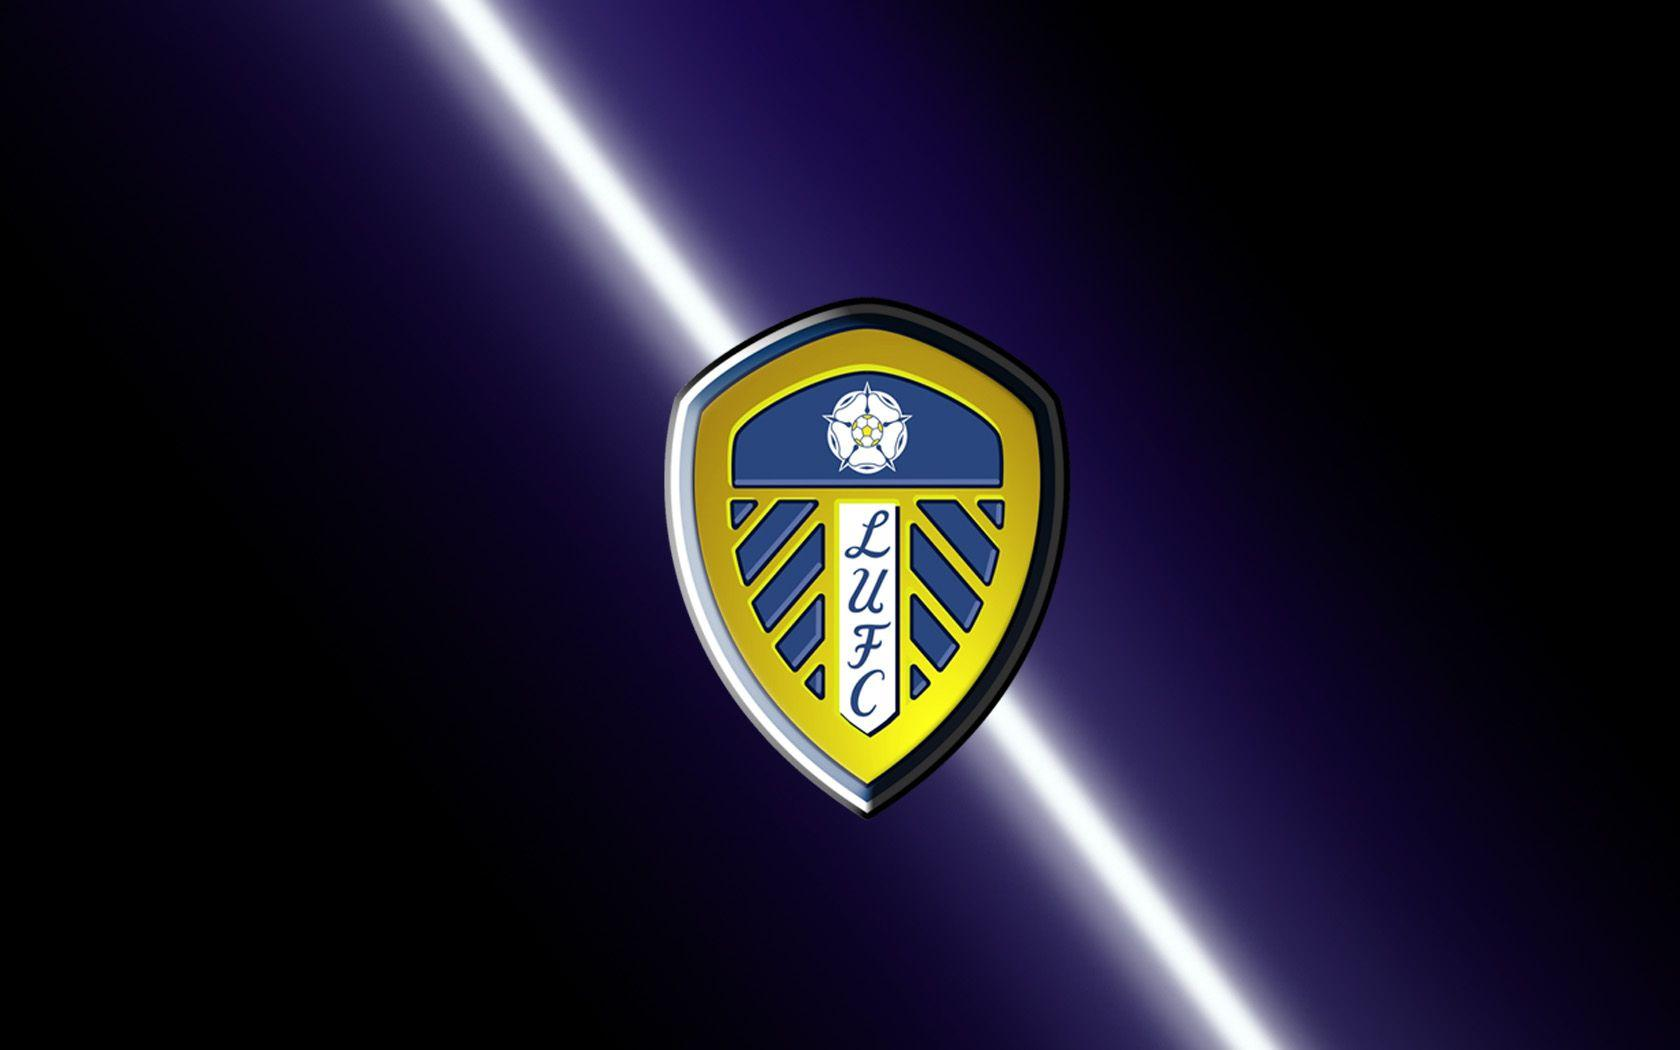 Leeds United Wallpapers Wallpaper Cave